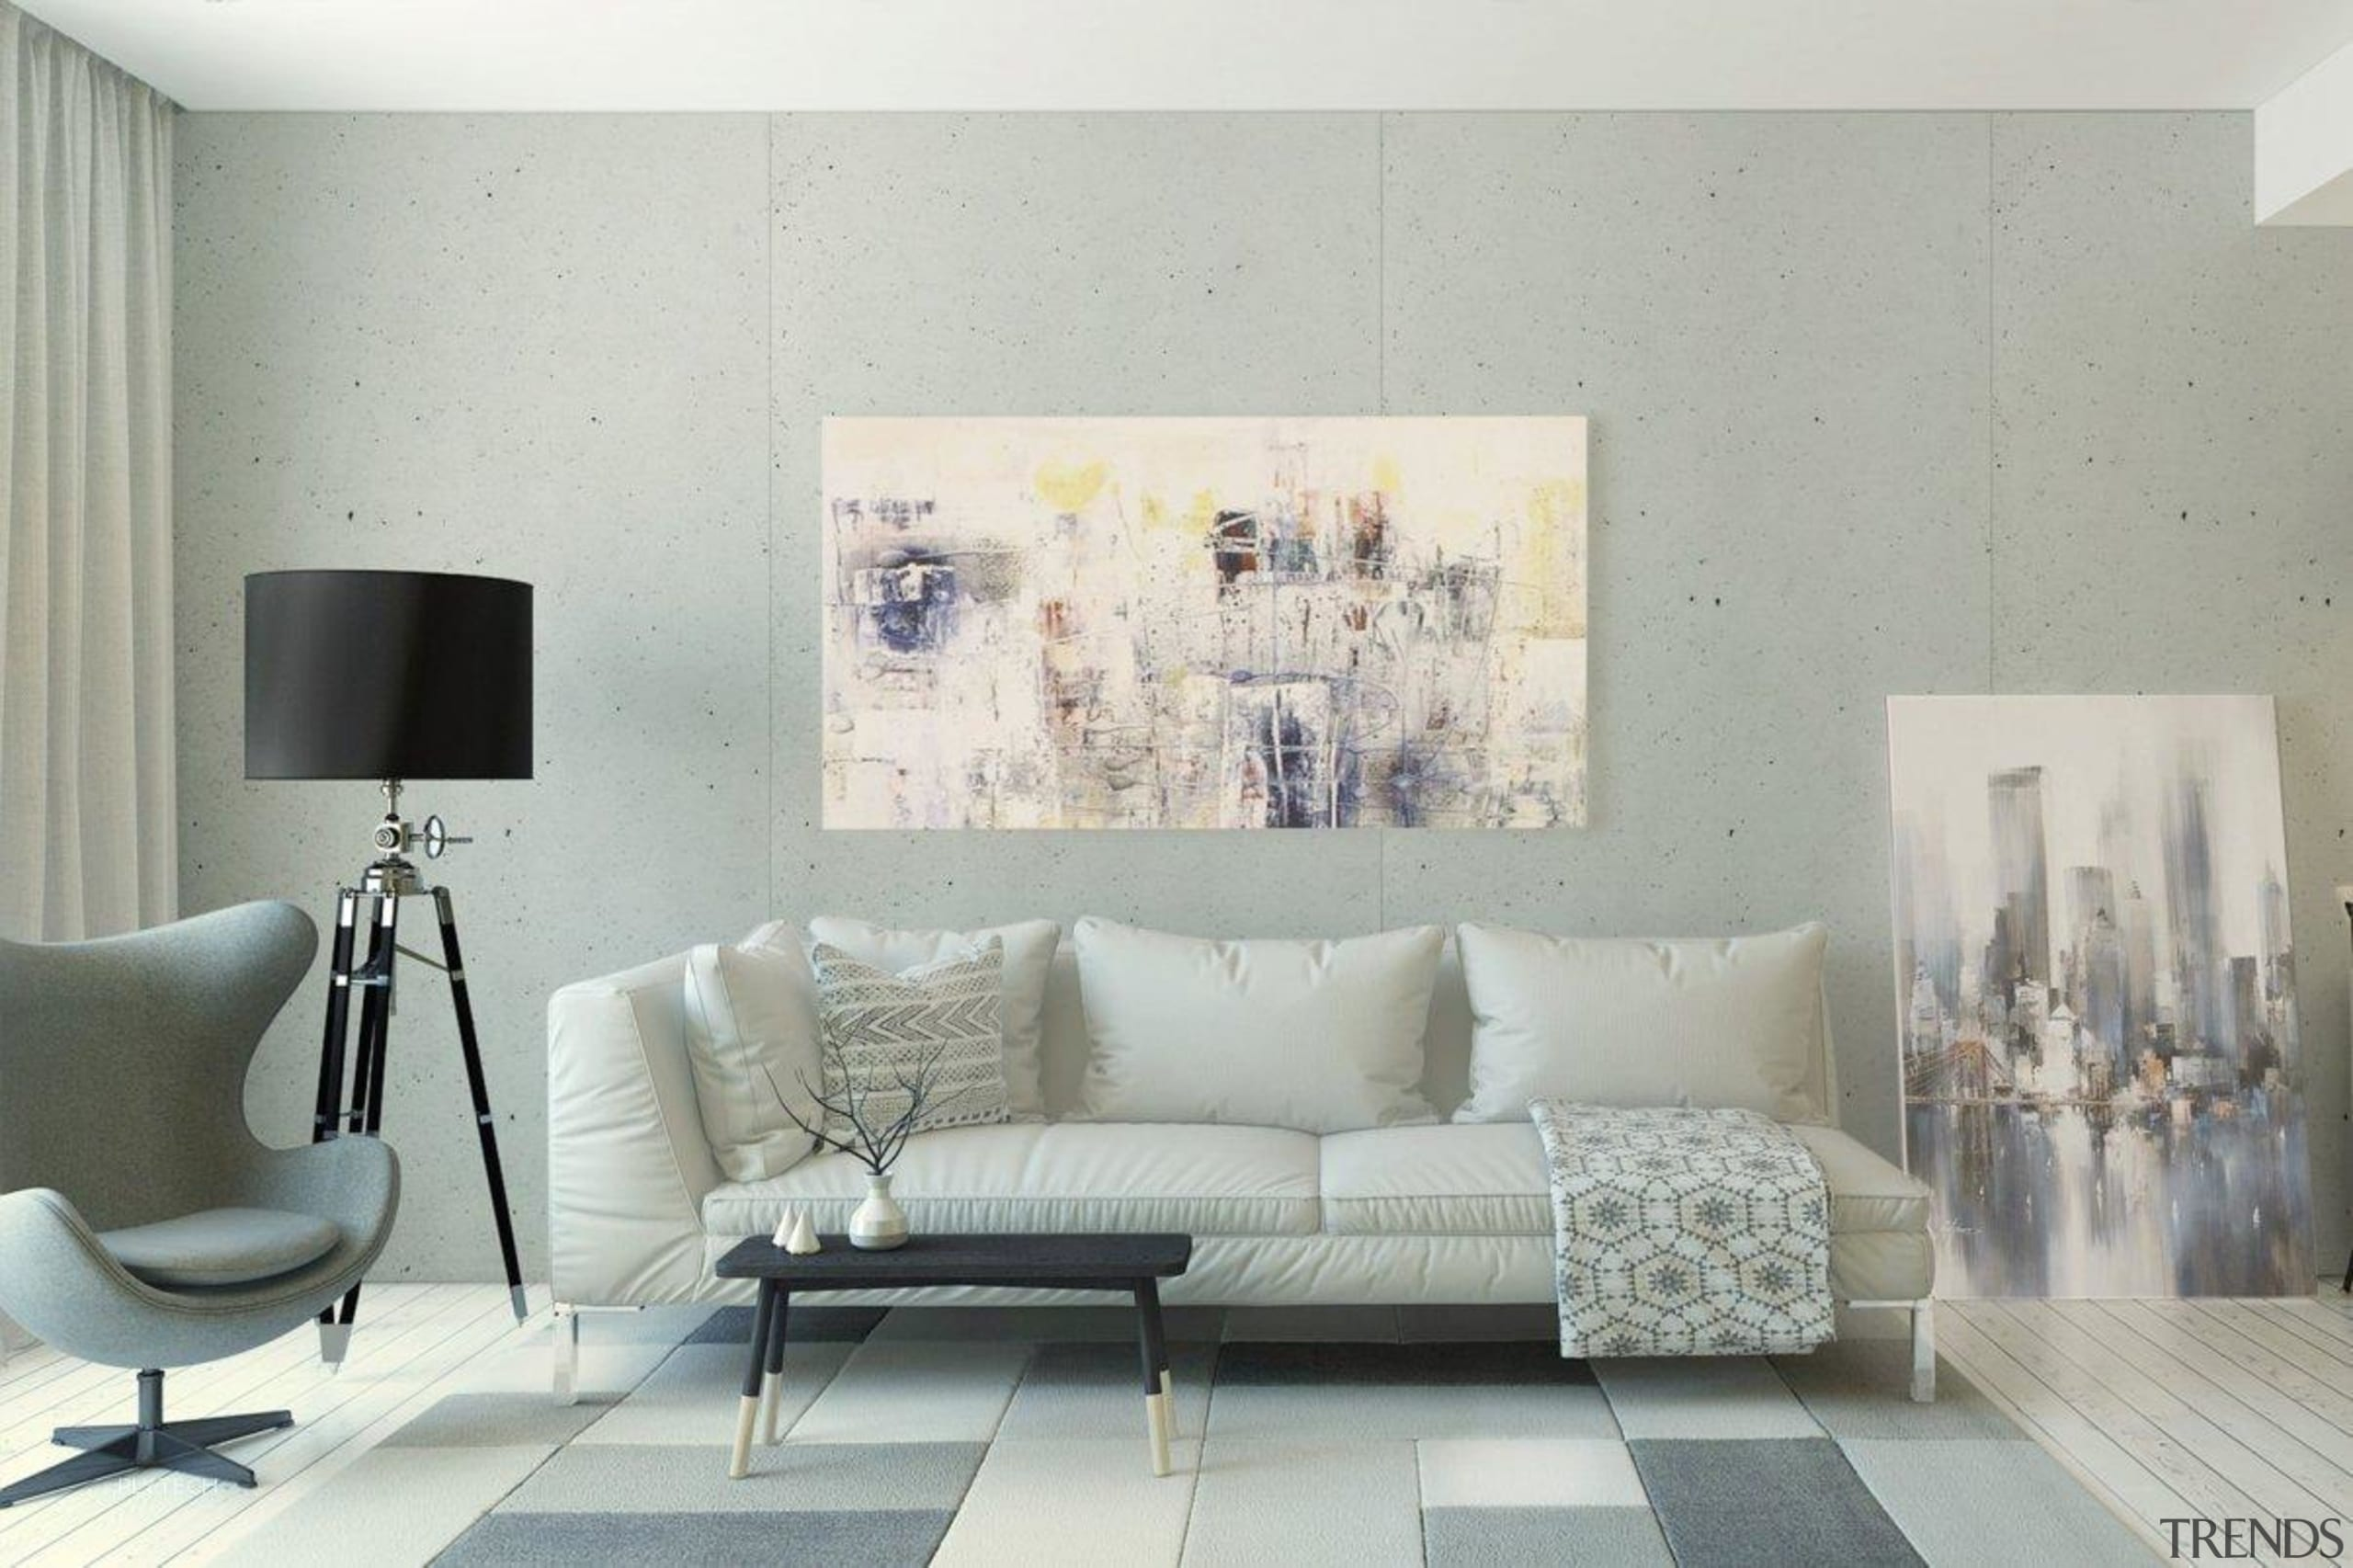 Concrete offers a different look for your home couch, floor, furniture, home, interior design, living room, room, table, wall, gray